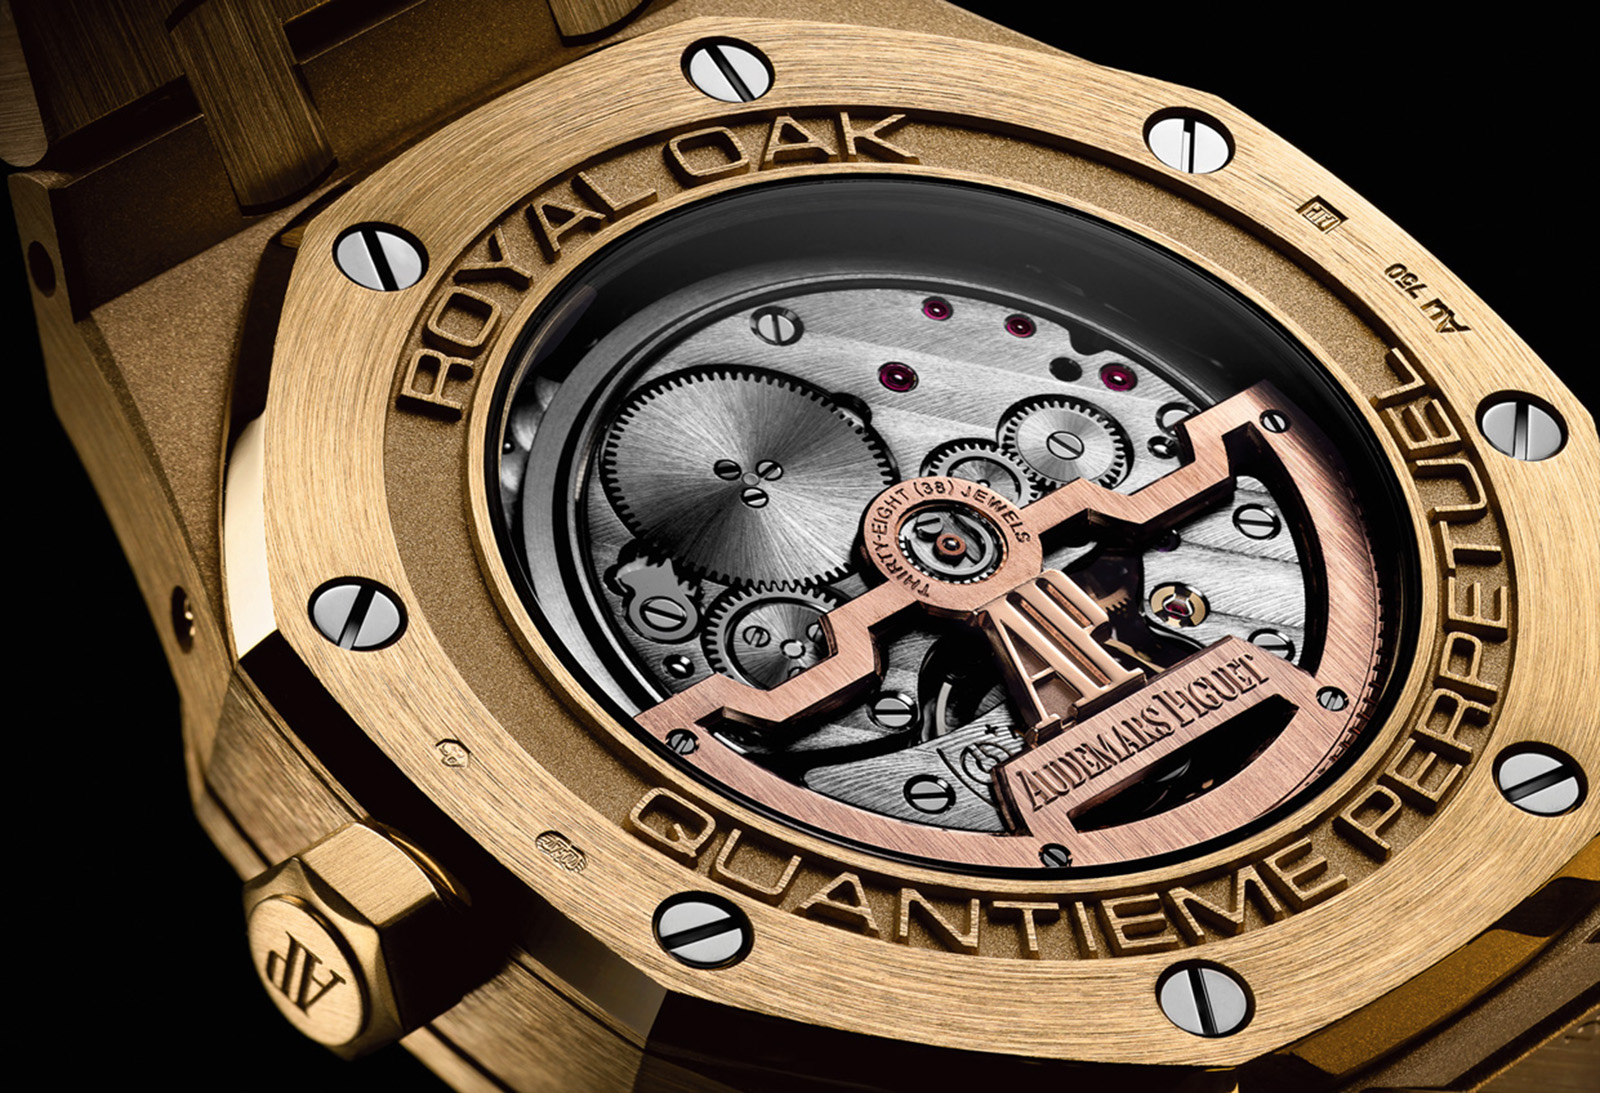 Audemars Piguet Royal Oak Perpetual Calendar Yellow Gold trasera